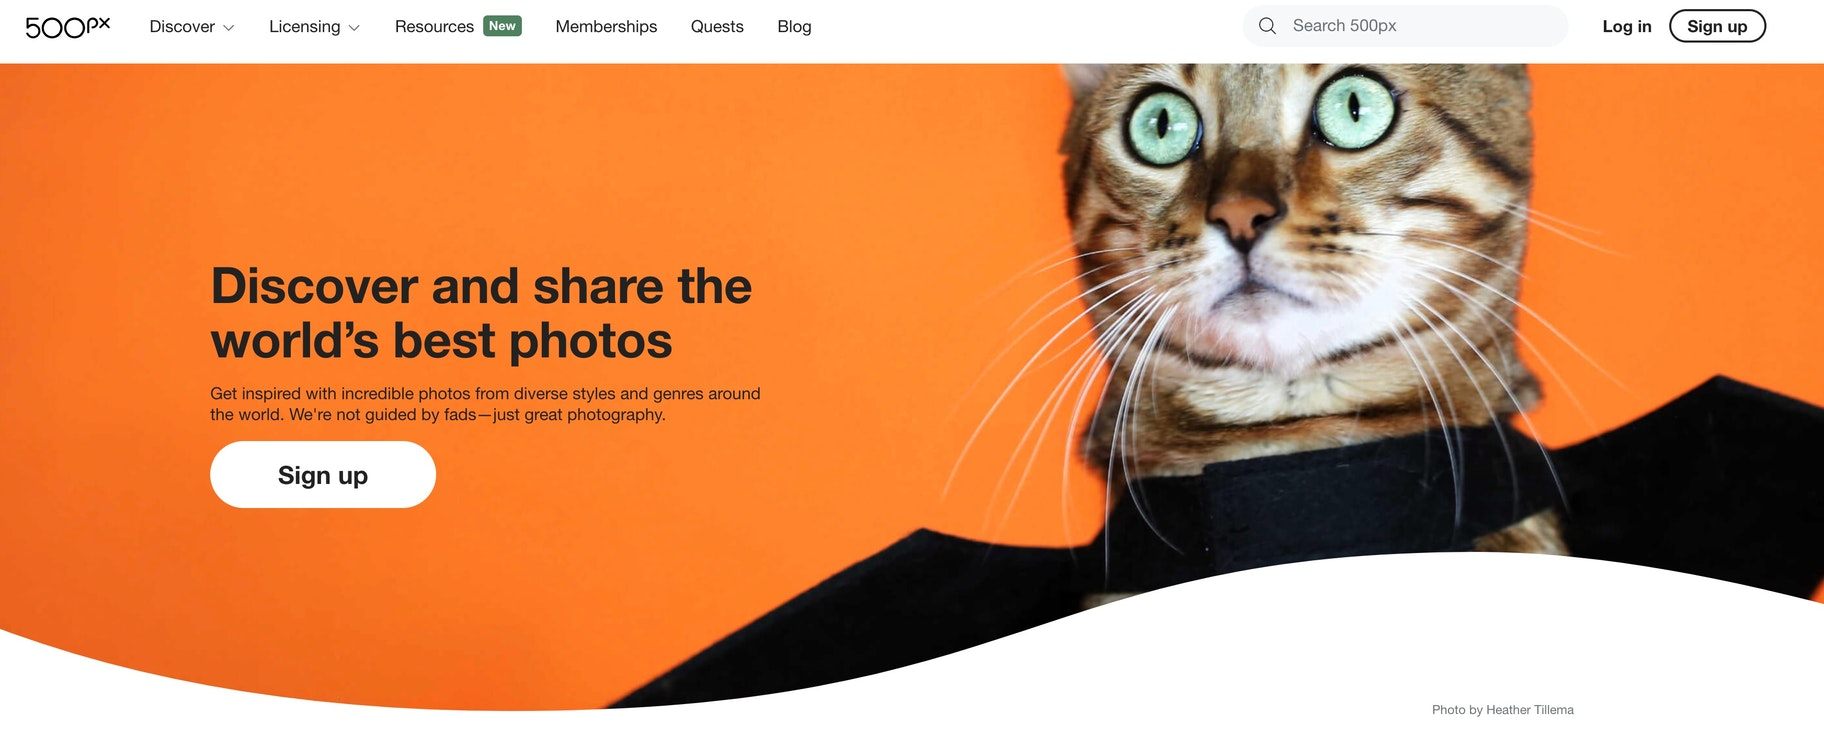 best places to sell photos online: 500px